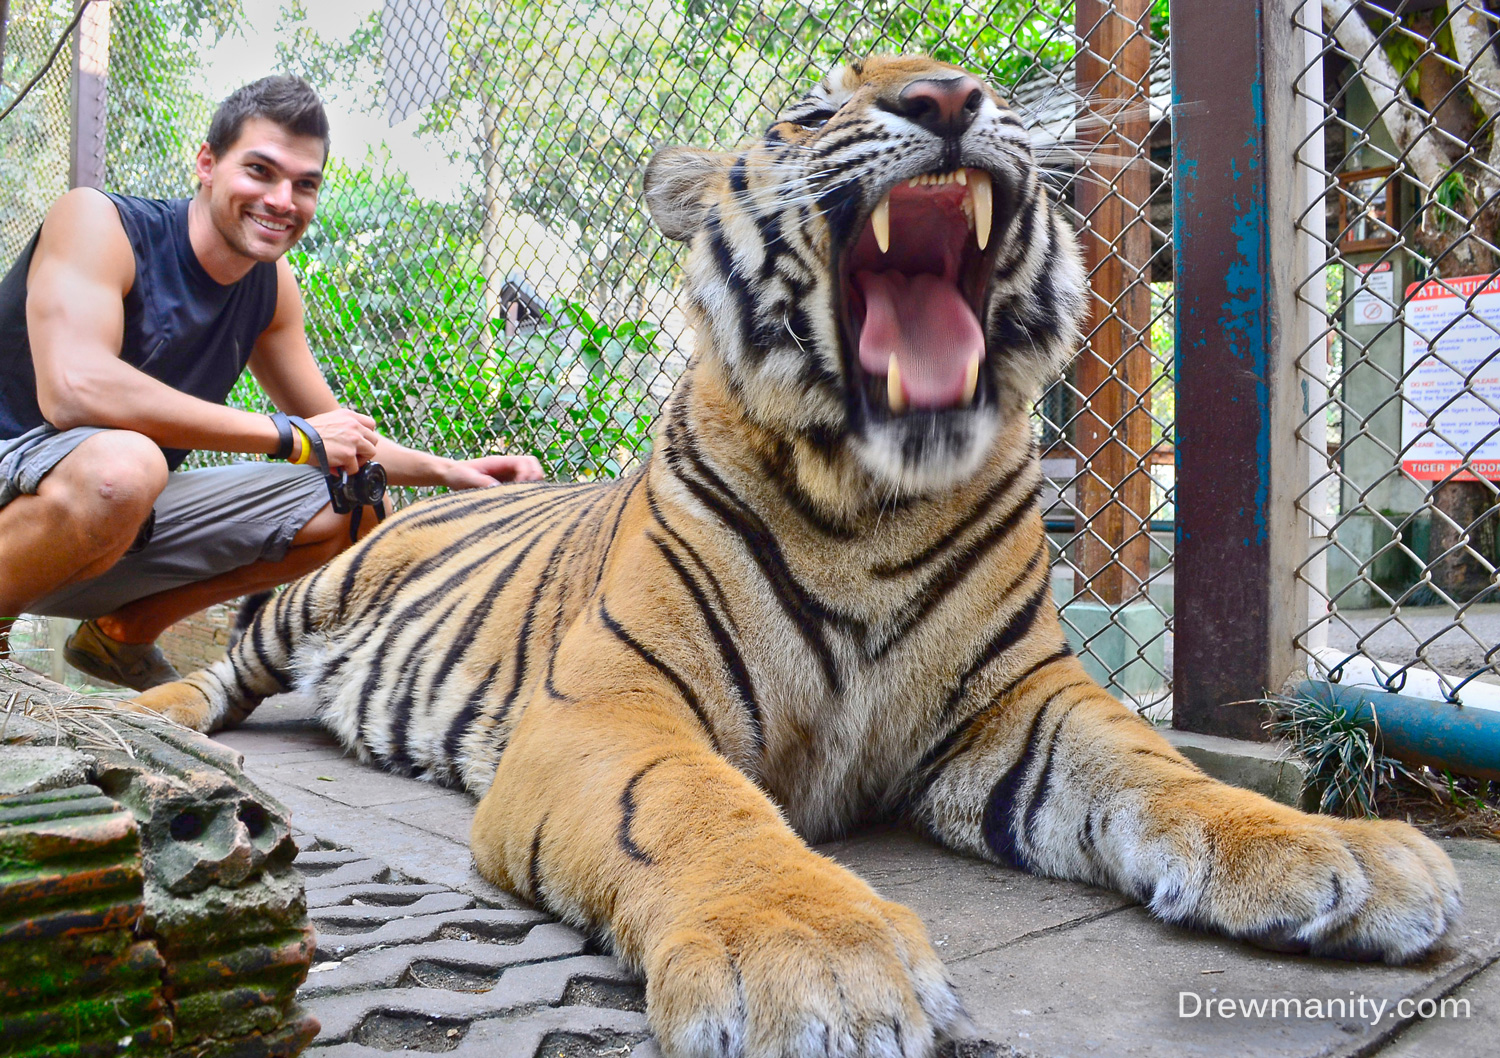 A day with the Big Cats – Drewmanity.com